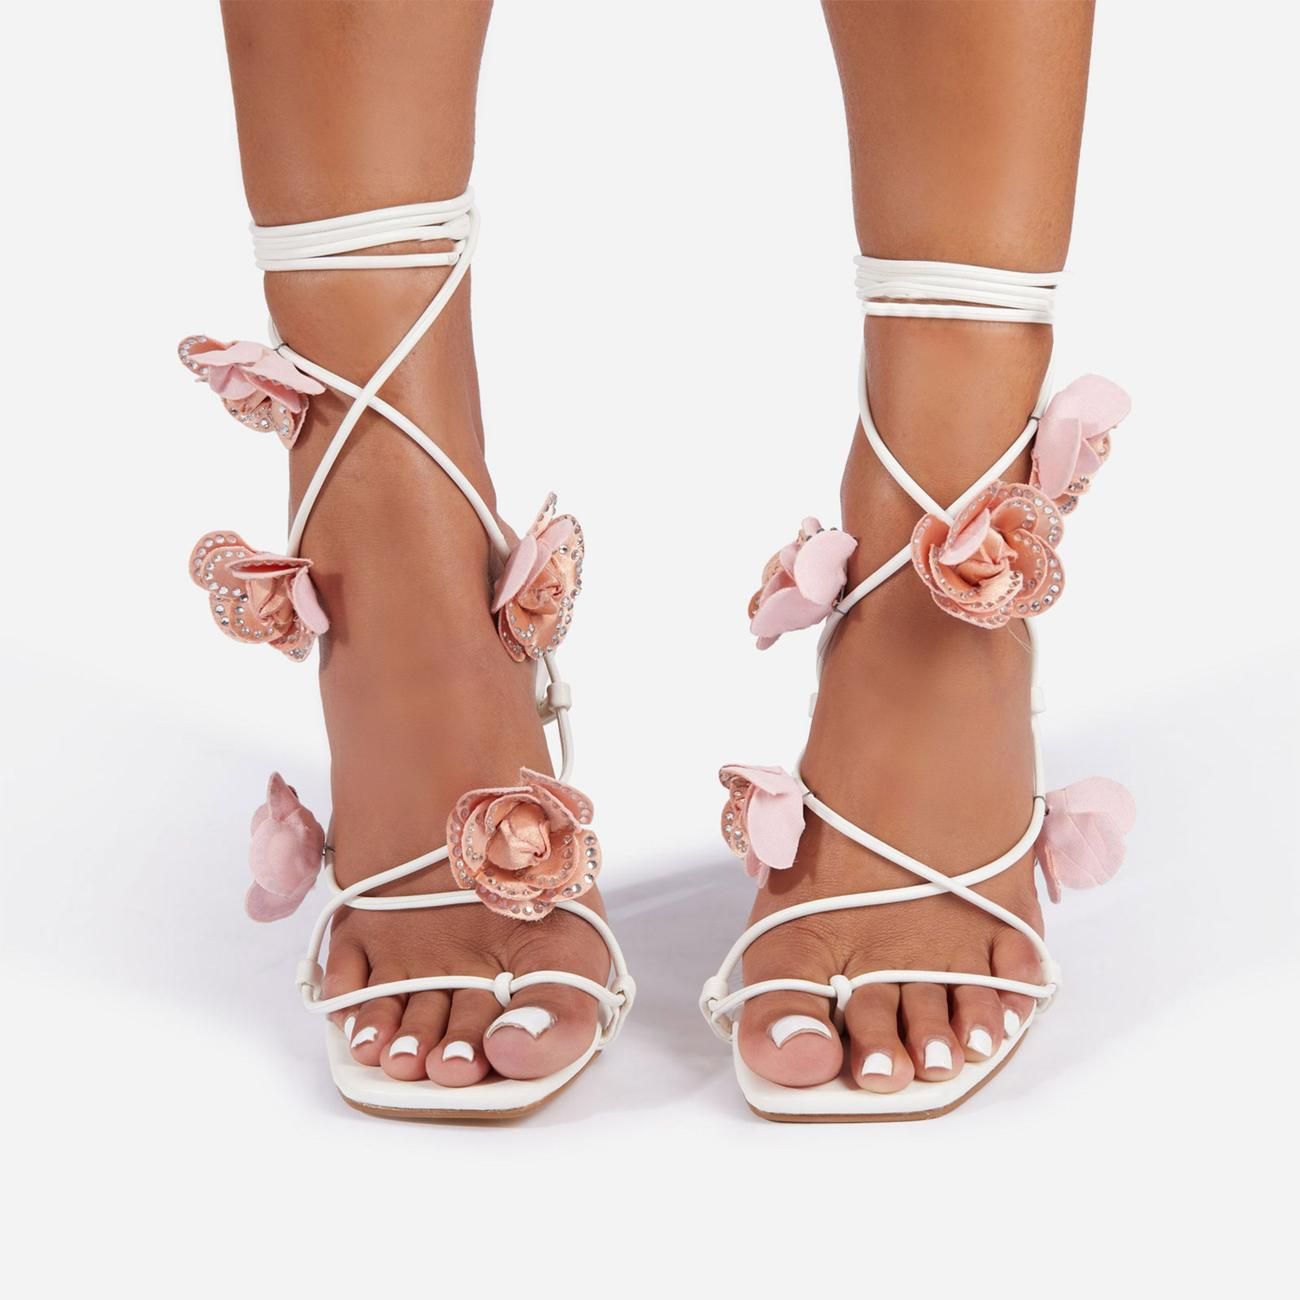 Rose Whip Embellished Floral Detail Lace Up Heel in White Faux Leather Image 3